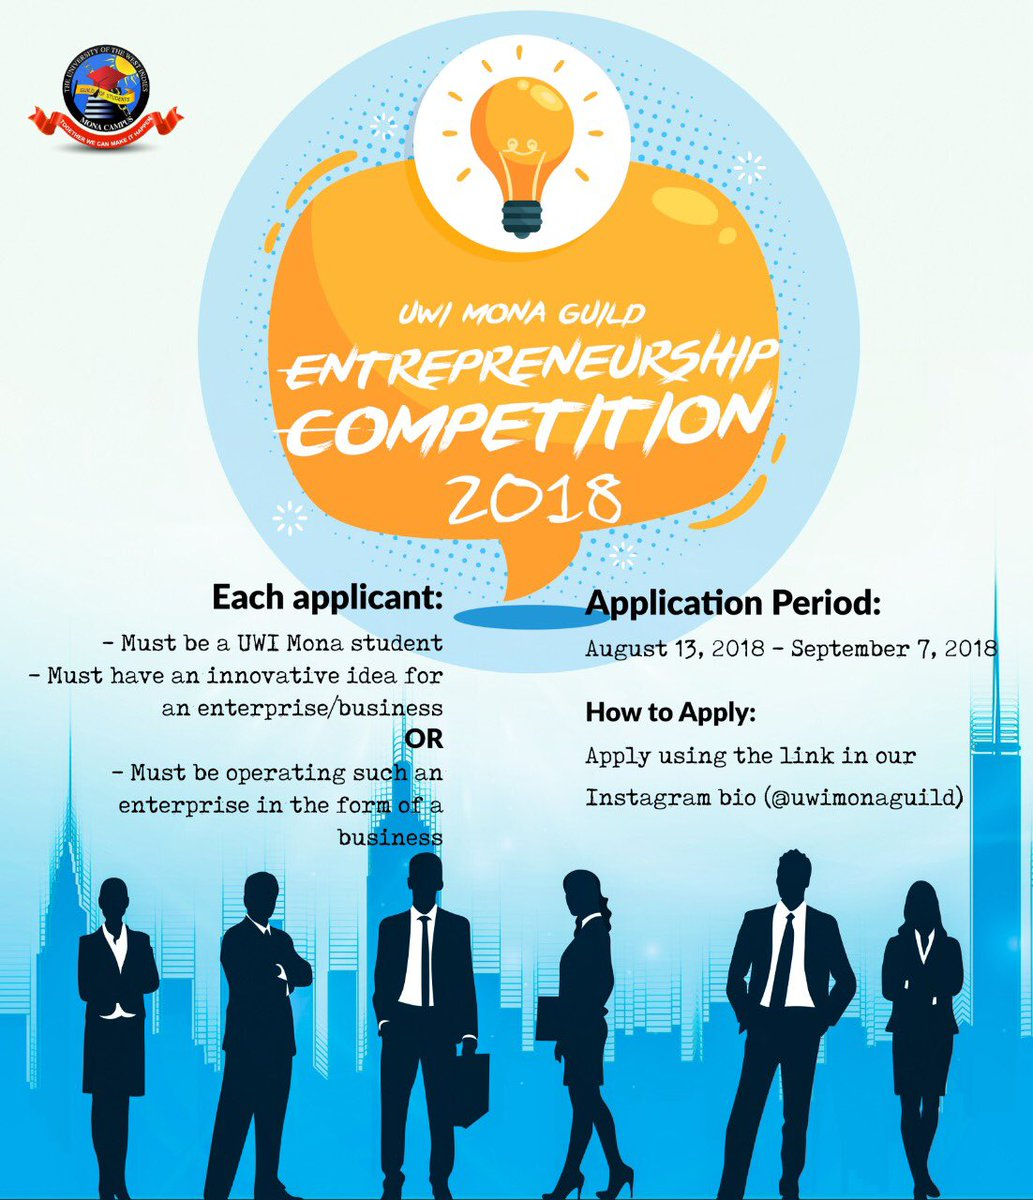 Do you have a winning idea for a business?   The UWI Mona Guild's Entrepreneurship Competition is an exciting opportunity to develop your innovative ideas and projects.  Click the link in @uwimonaguild bio to register now #iRepMyGuild #BeYourOwnBoss<br>http://pic.twitter.com/DQQf5TFPYb